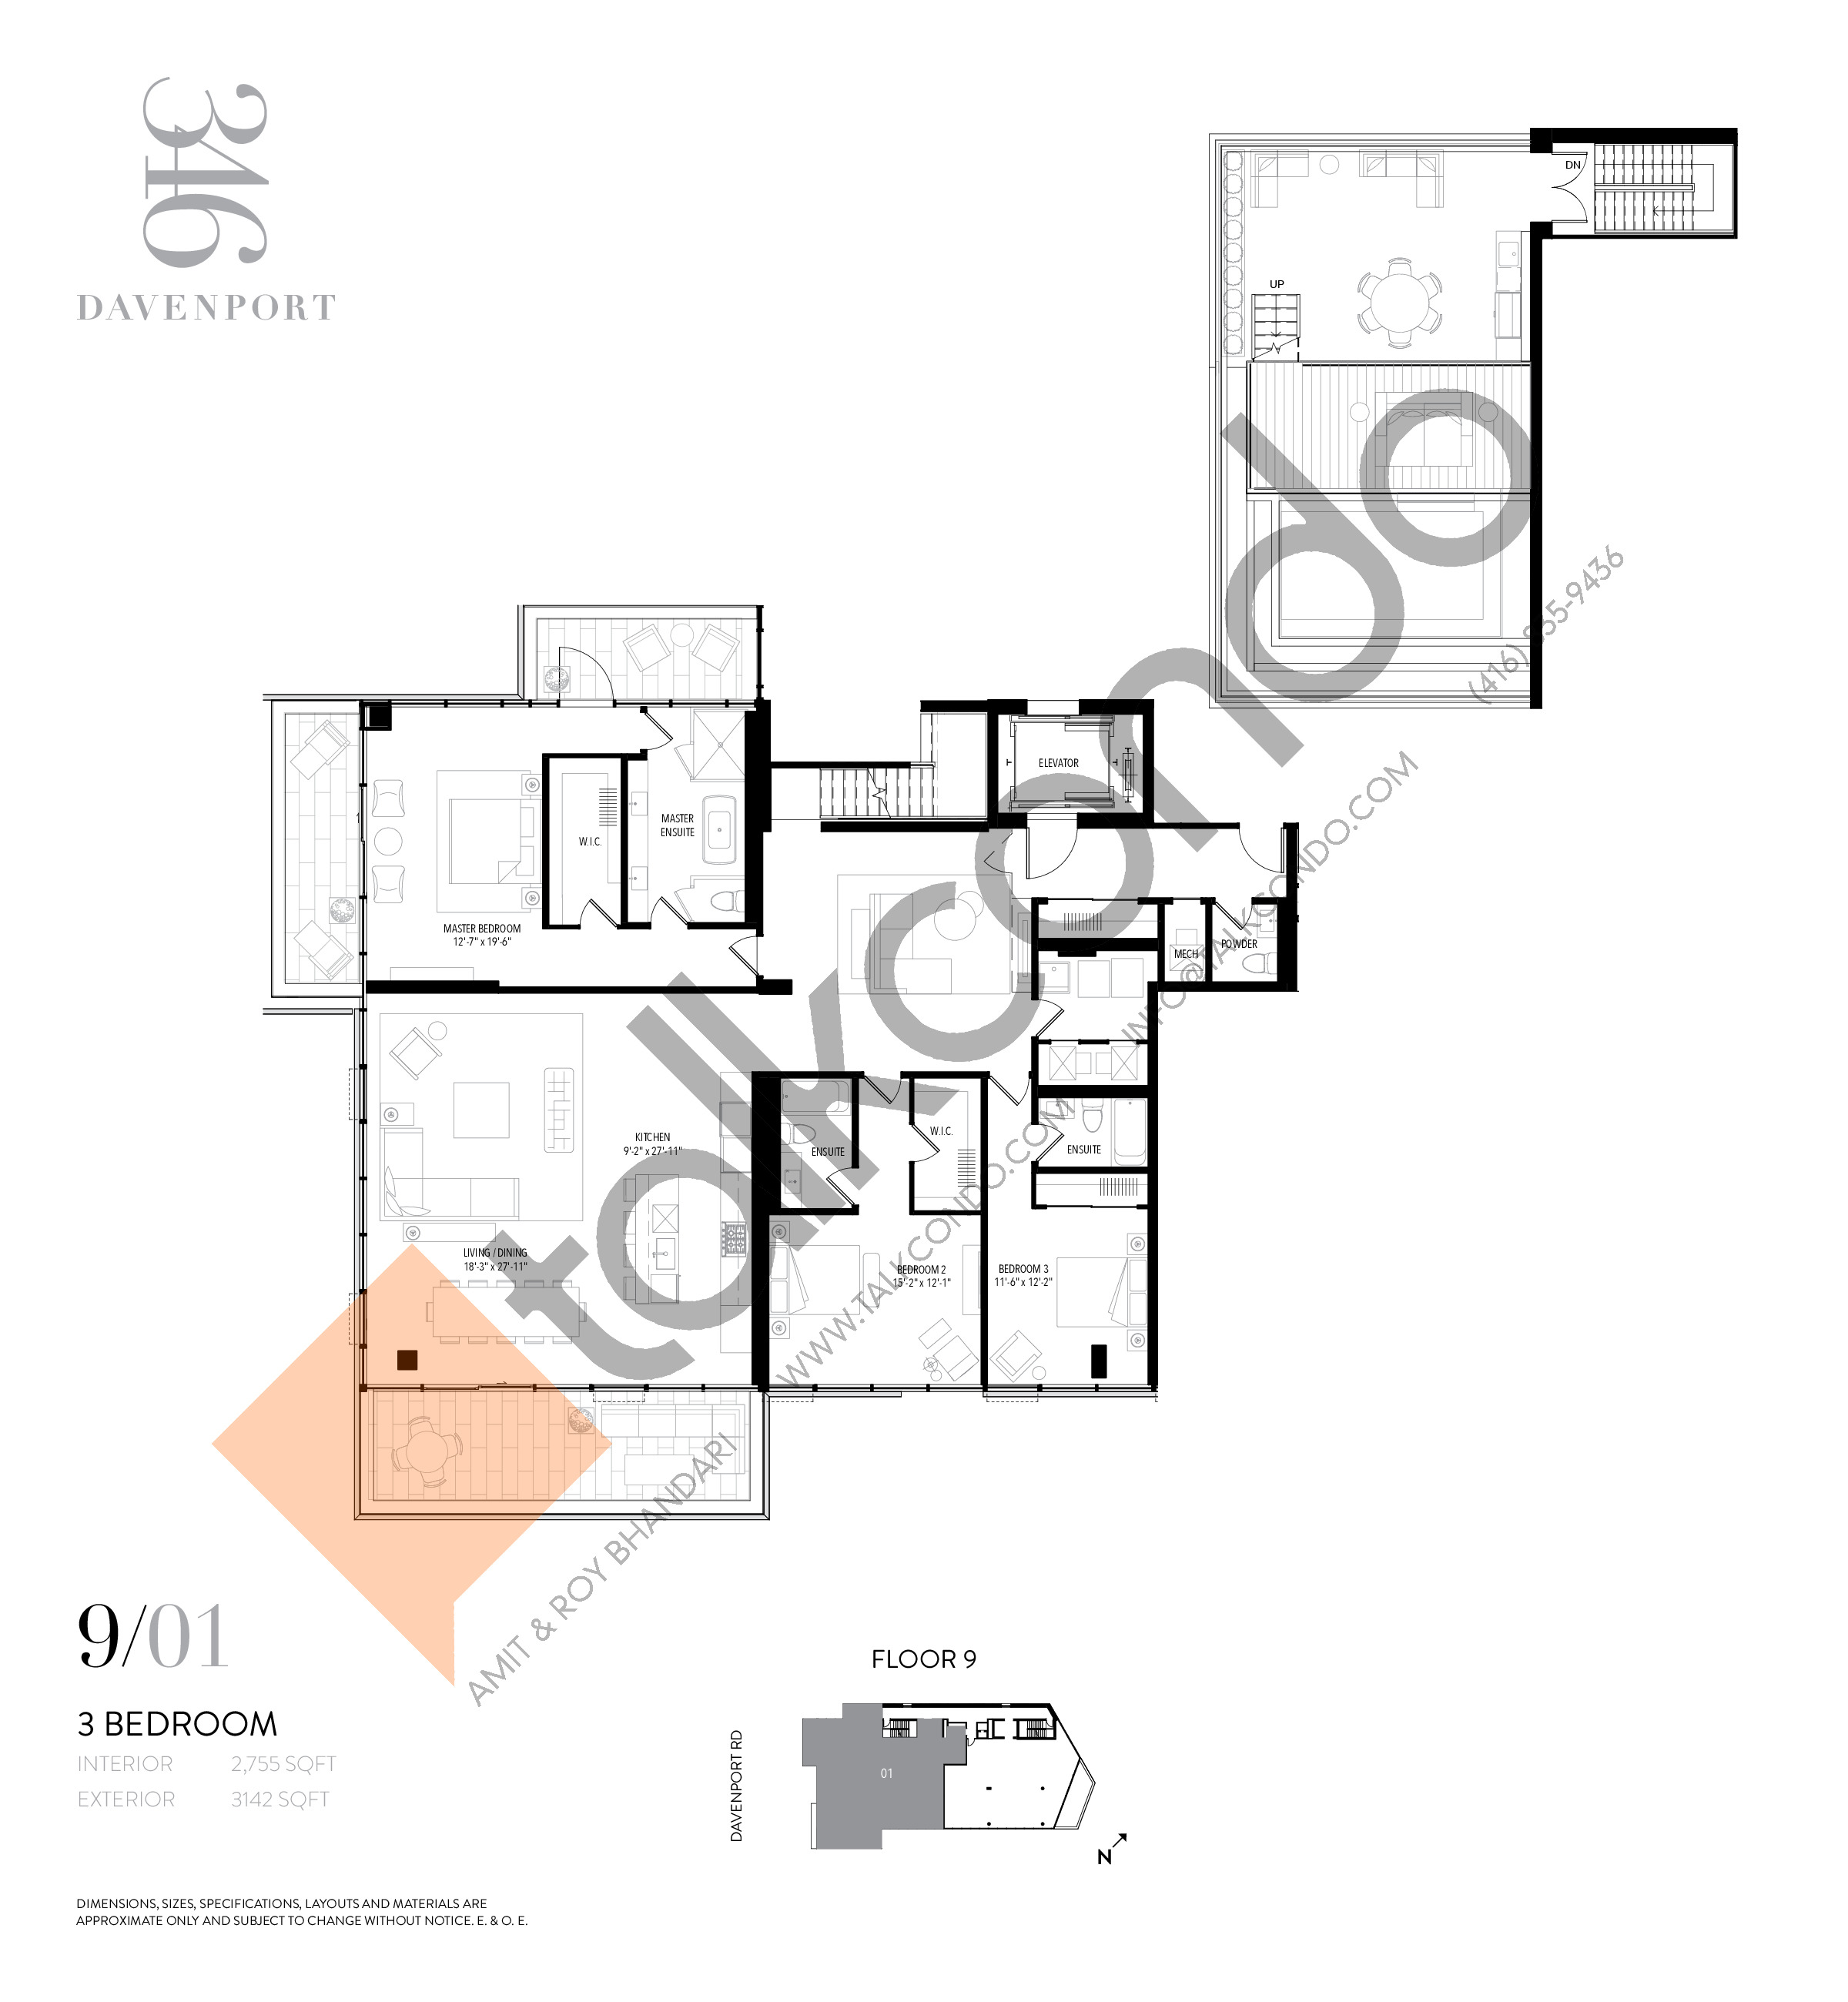 Unit 901 Floor Plan at 346 Davenport Condos - 2755 sq.ft